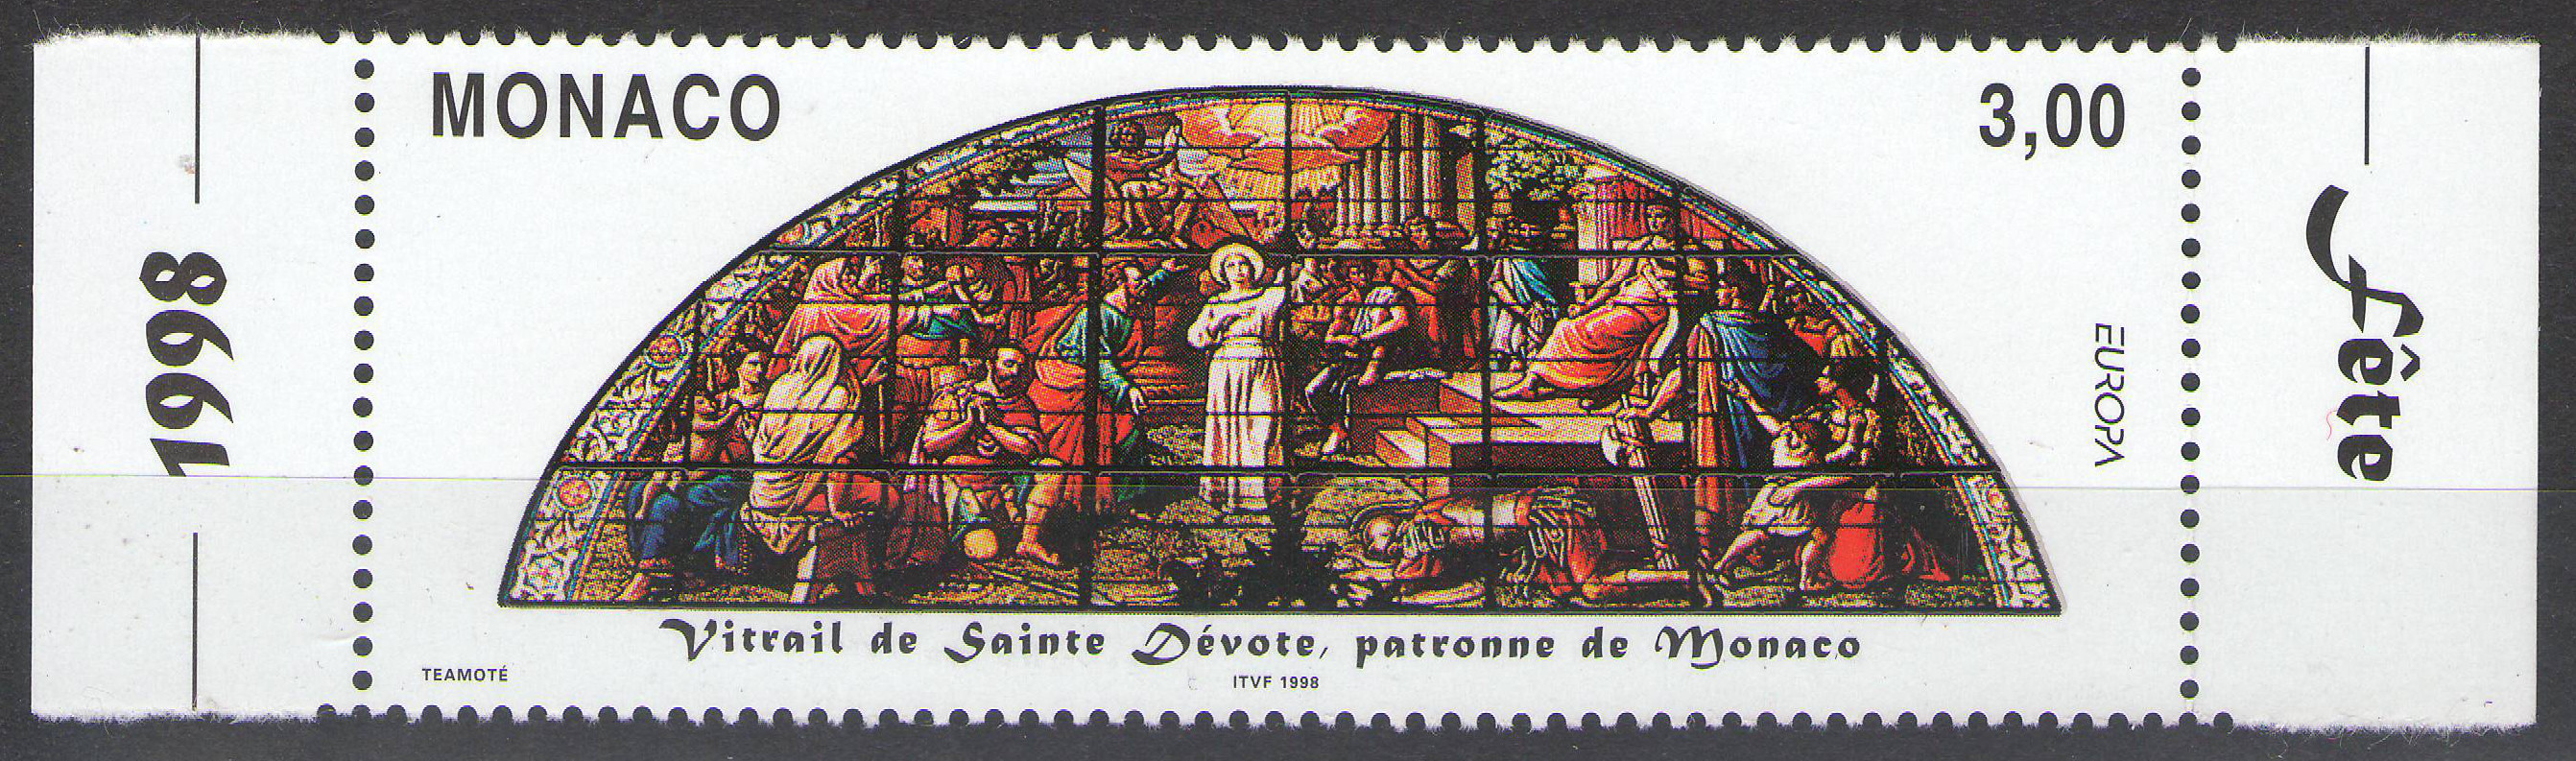 Monaco - 1998 - Saint Devote Stained Glass Window - margin MNH** - cv ?1.50